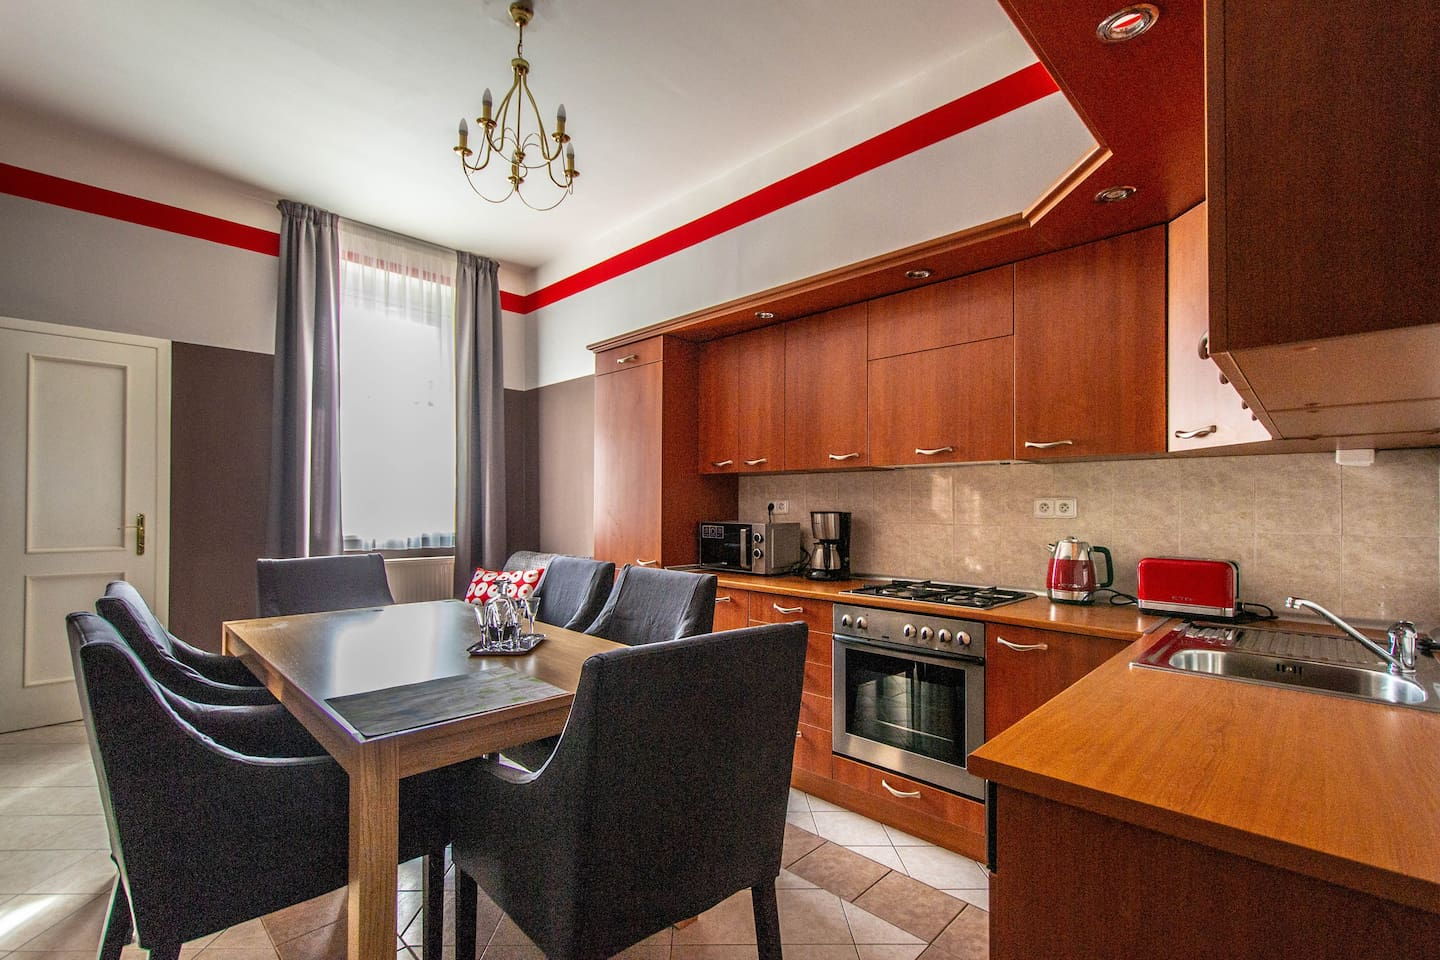 Apartment is 85 m2 big. It has a modern kitchen with a dining area. Armchairs are super comfy!